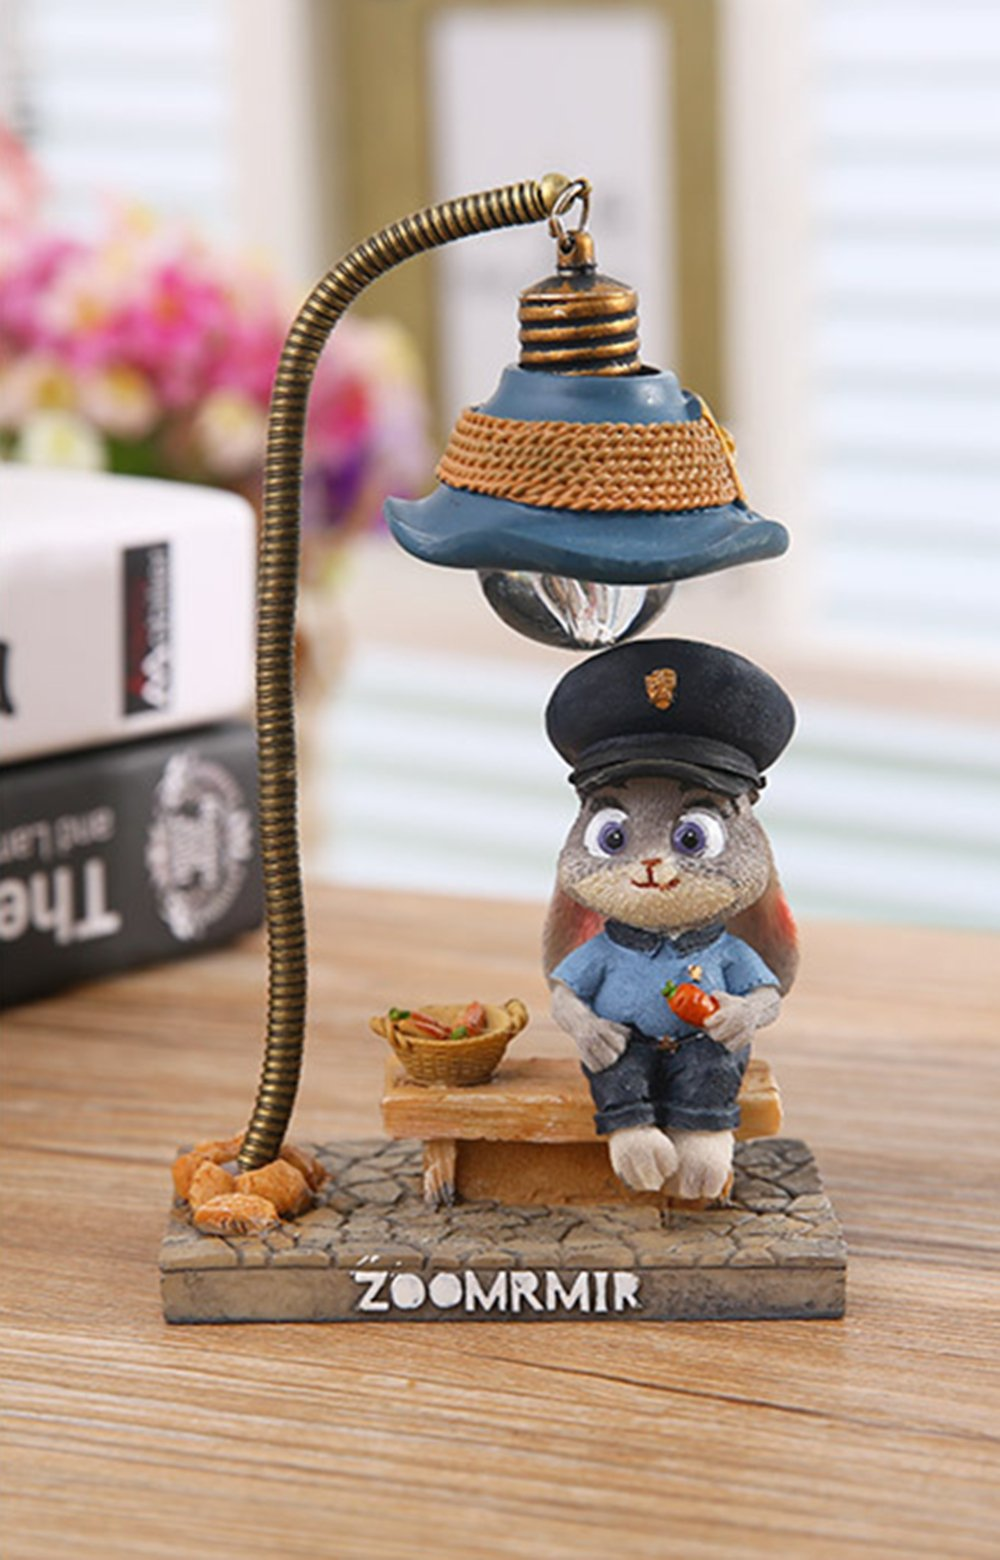 YOURNELO Decorative Cute Cartoon Disney Zootopia Judy Nick Desk Ornaments LED Night Light Gift (Judy) by YOURNELO